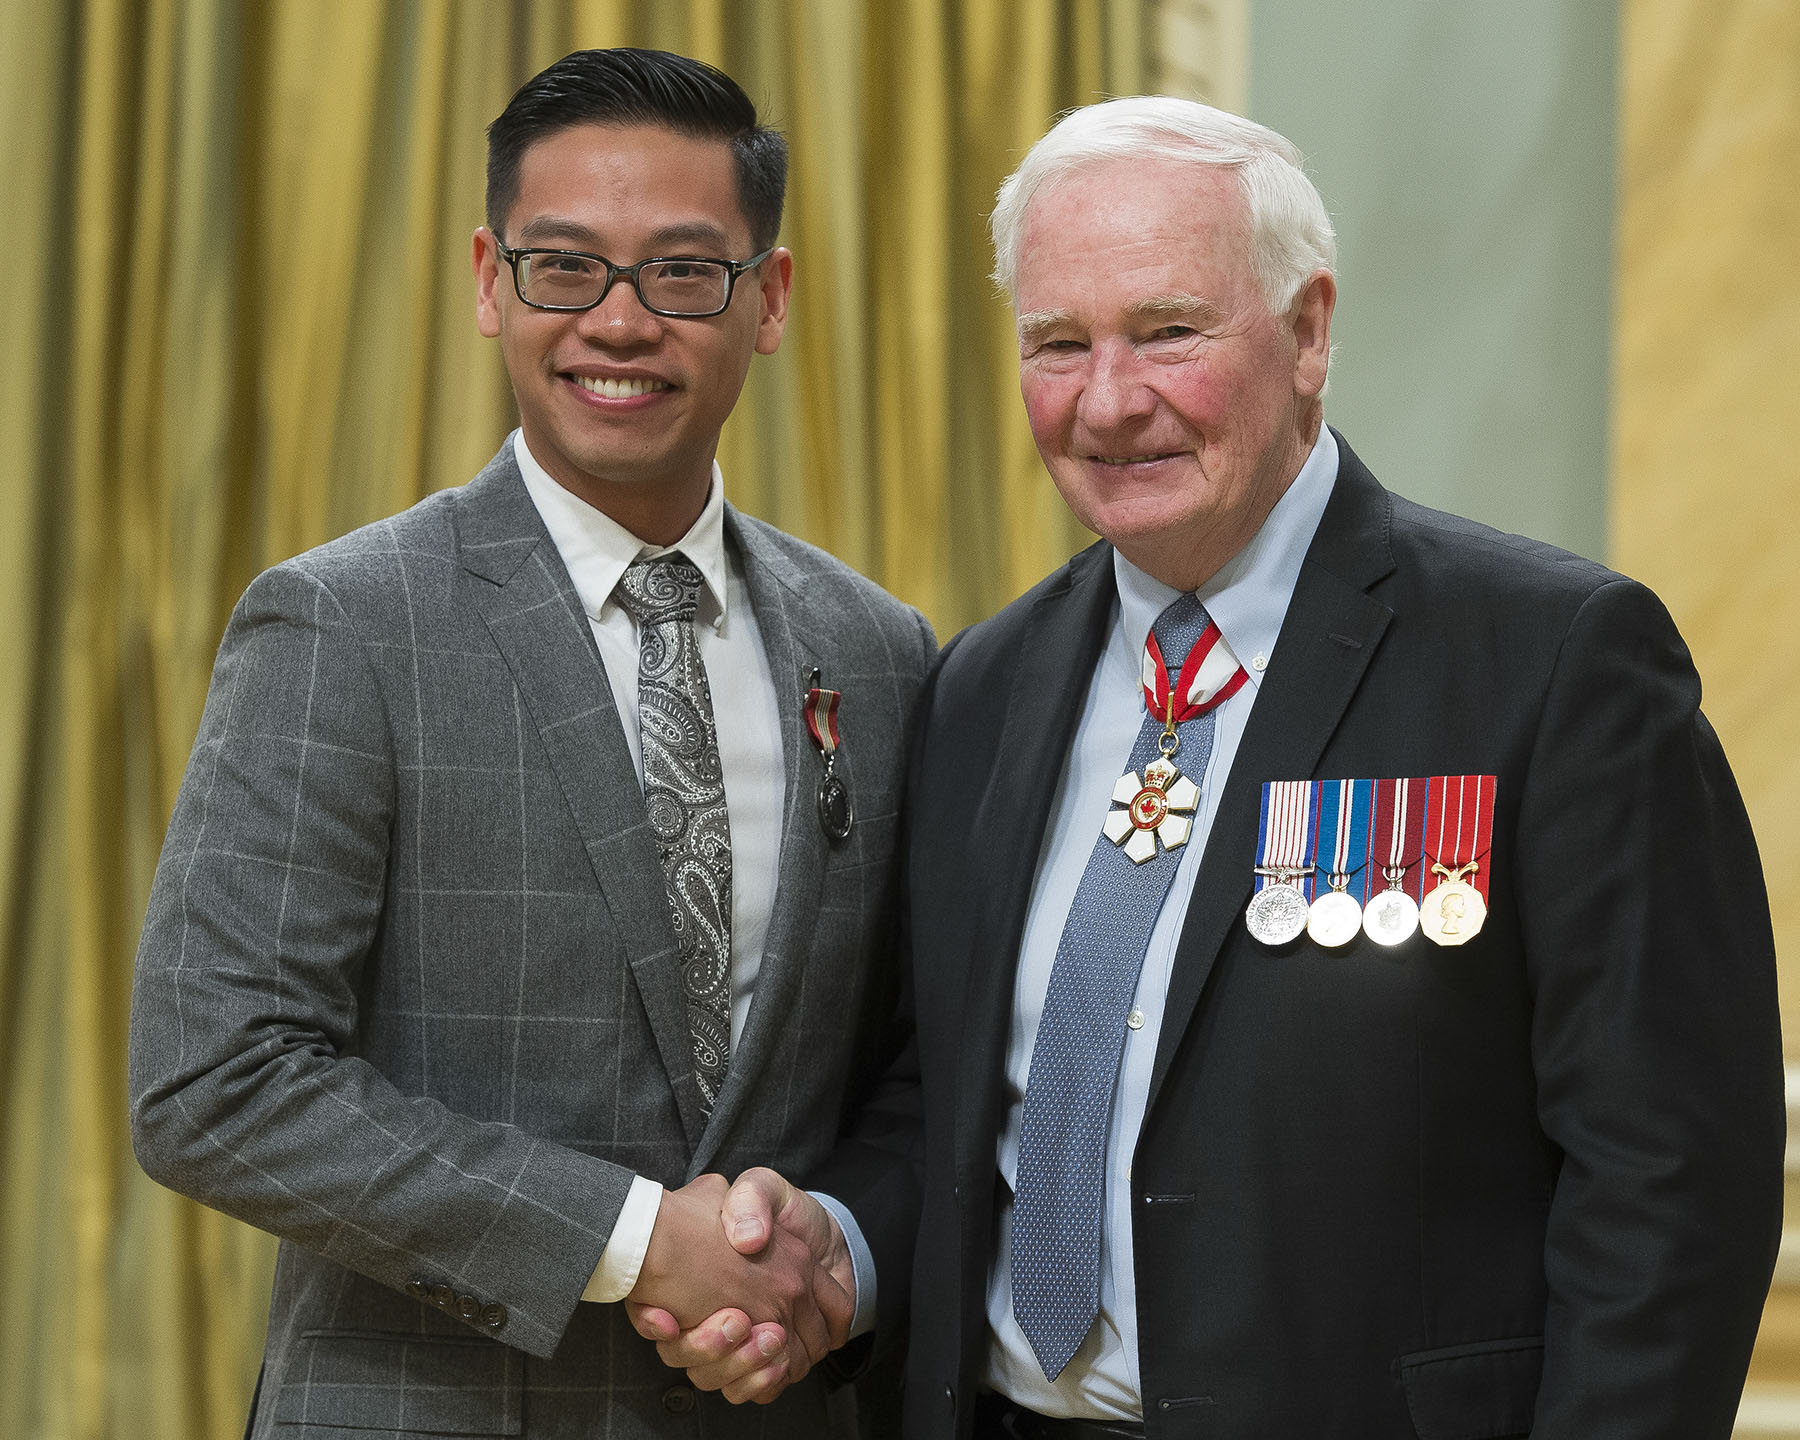 Vinh Phan has dedicated countless hours to assisting underprivileged and at-risk youth. Having worked to establish both Rumie and the Teen Legal Helpline, he has enabled young men and women in Canada and around the world to have access to legal advice and to engage with educational materials on an equal and unbiased basis.